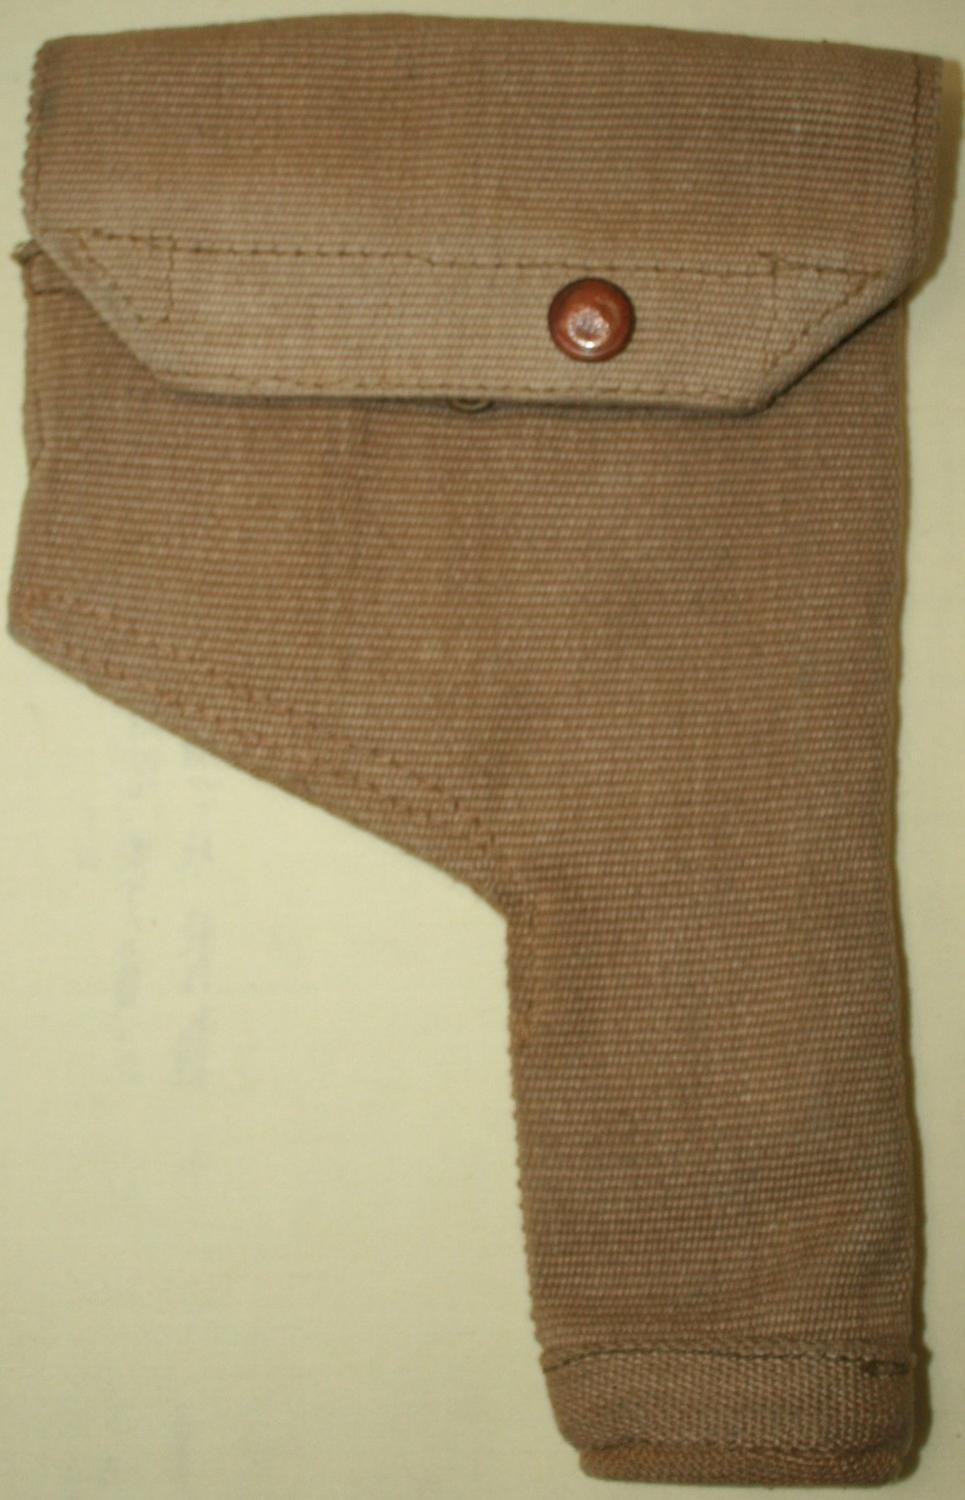 A GOOD MINT EXAMPLE OF THE 37 WEBBING PISTOL HOLSTER